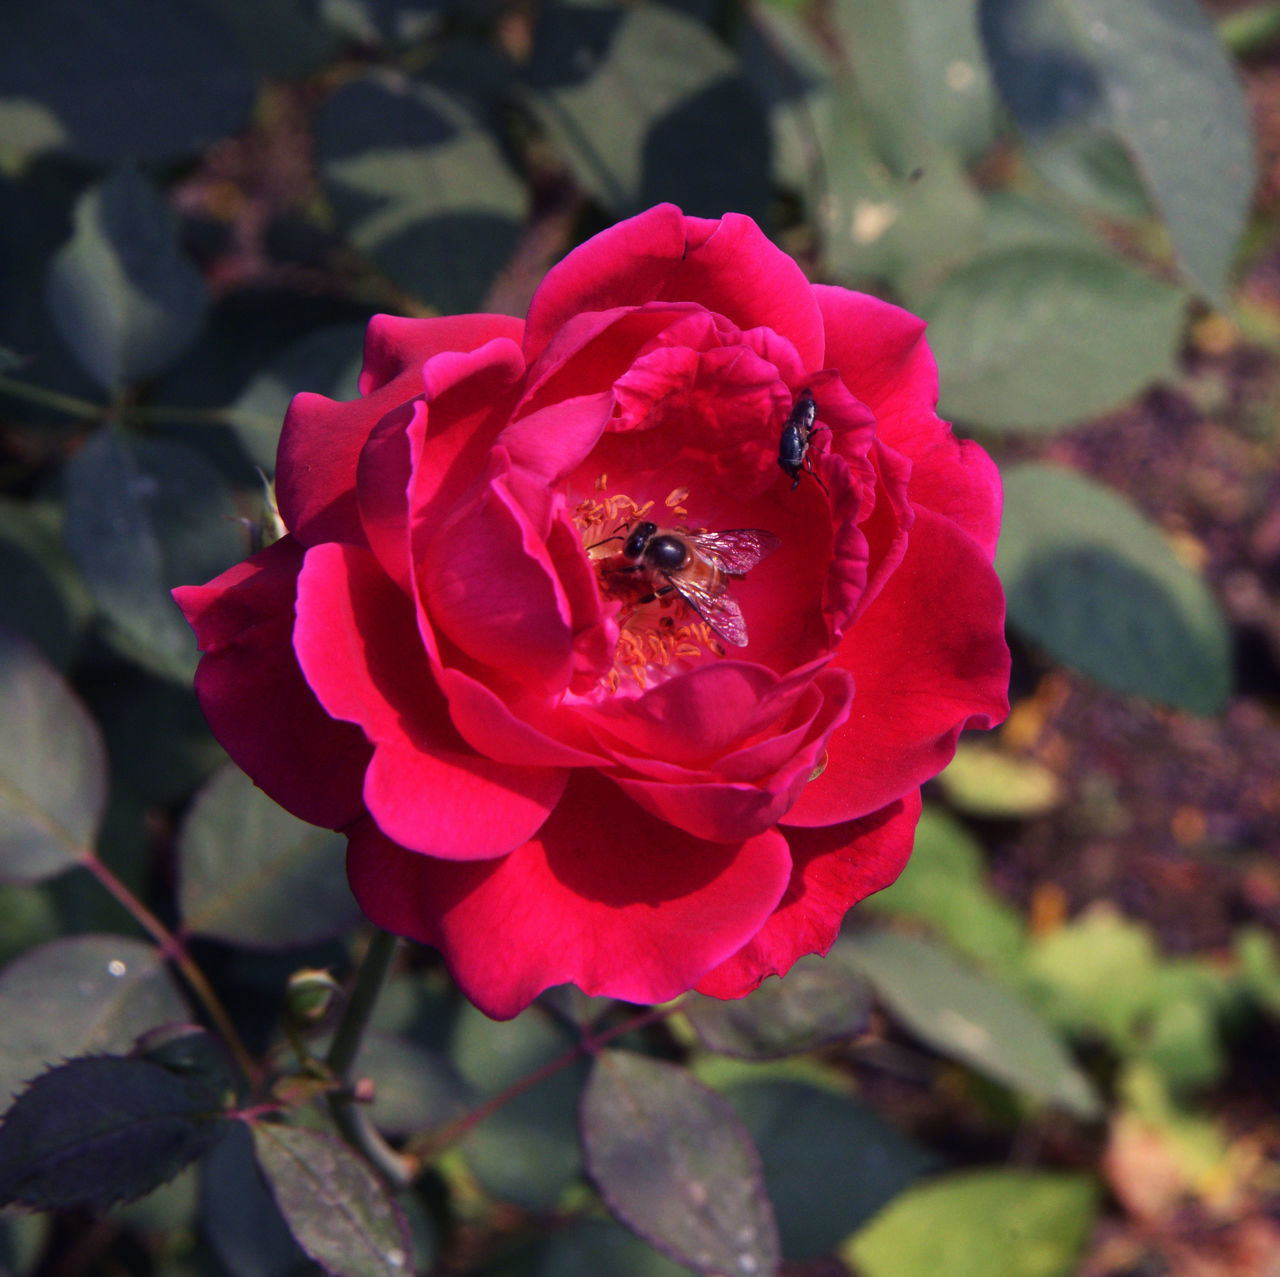 flower, petal, nature, growth, fragility, beauty in nature, insect, one animal, plant, flower head, rose - flower, animal themes, bee, no people, animals in the wild, outdoors, freshness, day, blooming, close-up